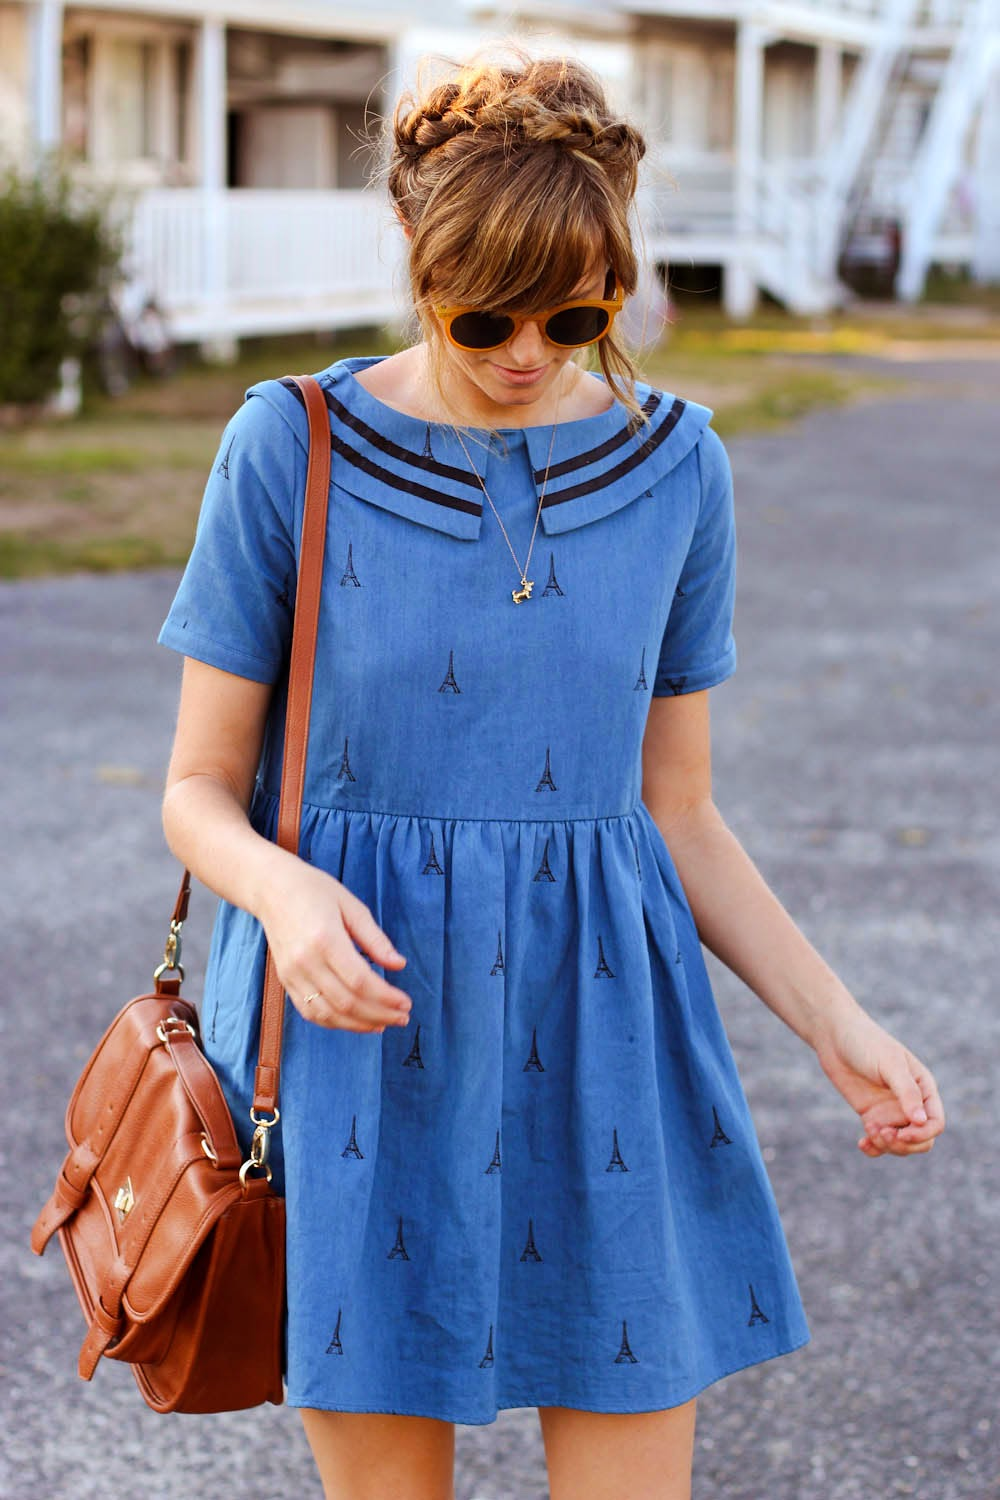 pepa loves sailor dress, montauk style post, nyc vintage fashion blog, forever 21 satchel, zero uv glasses, matt degreff